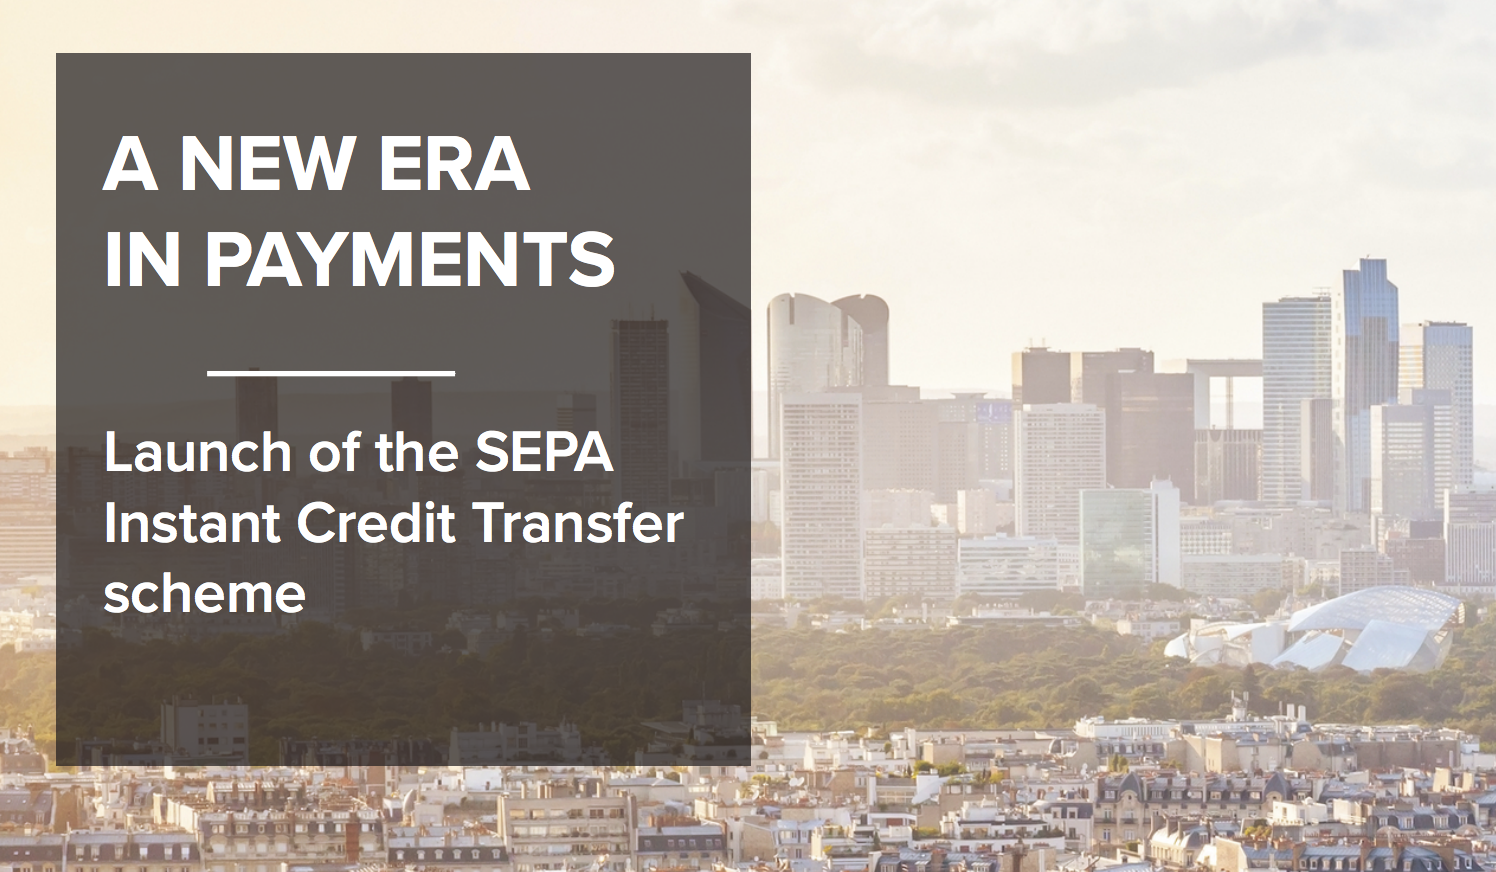 A new era in payments: Launch of the SEPA Instant Credit Transfer scheme (November 2016)